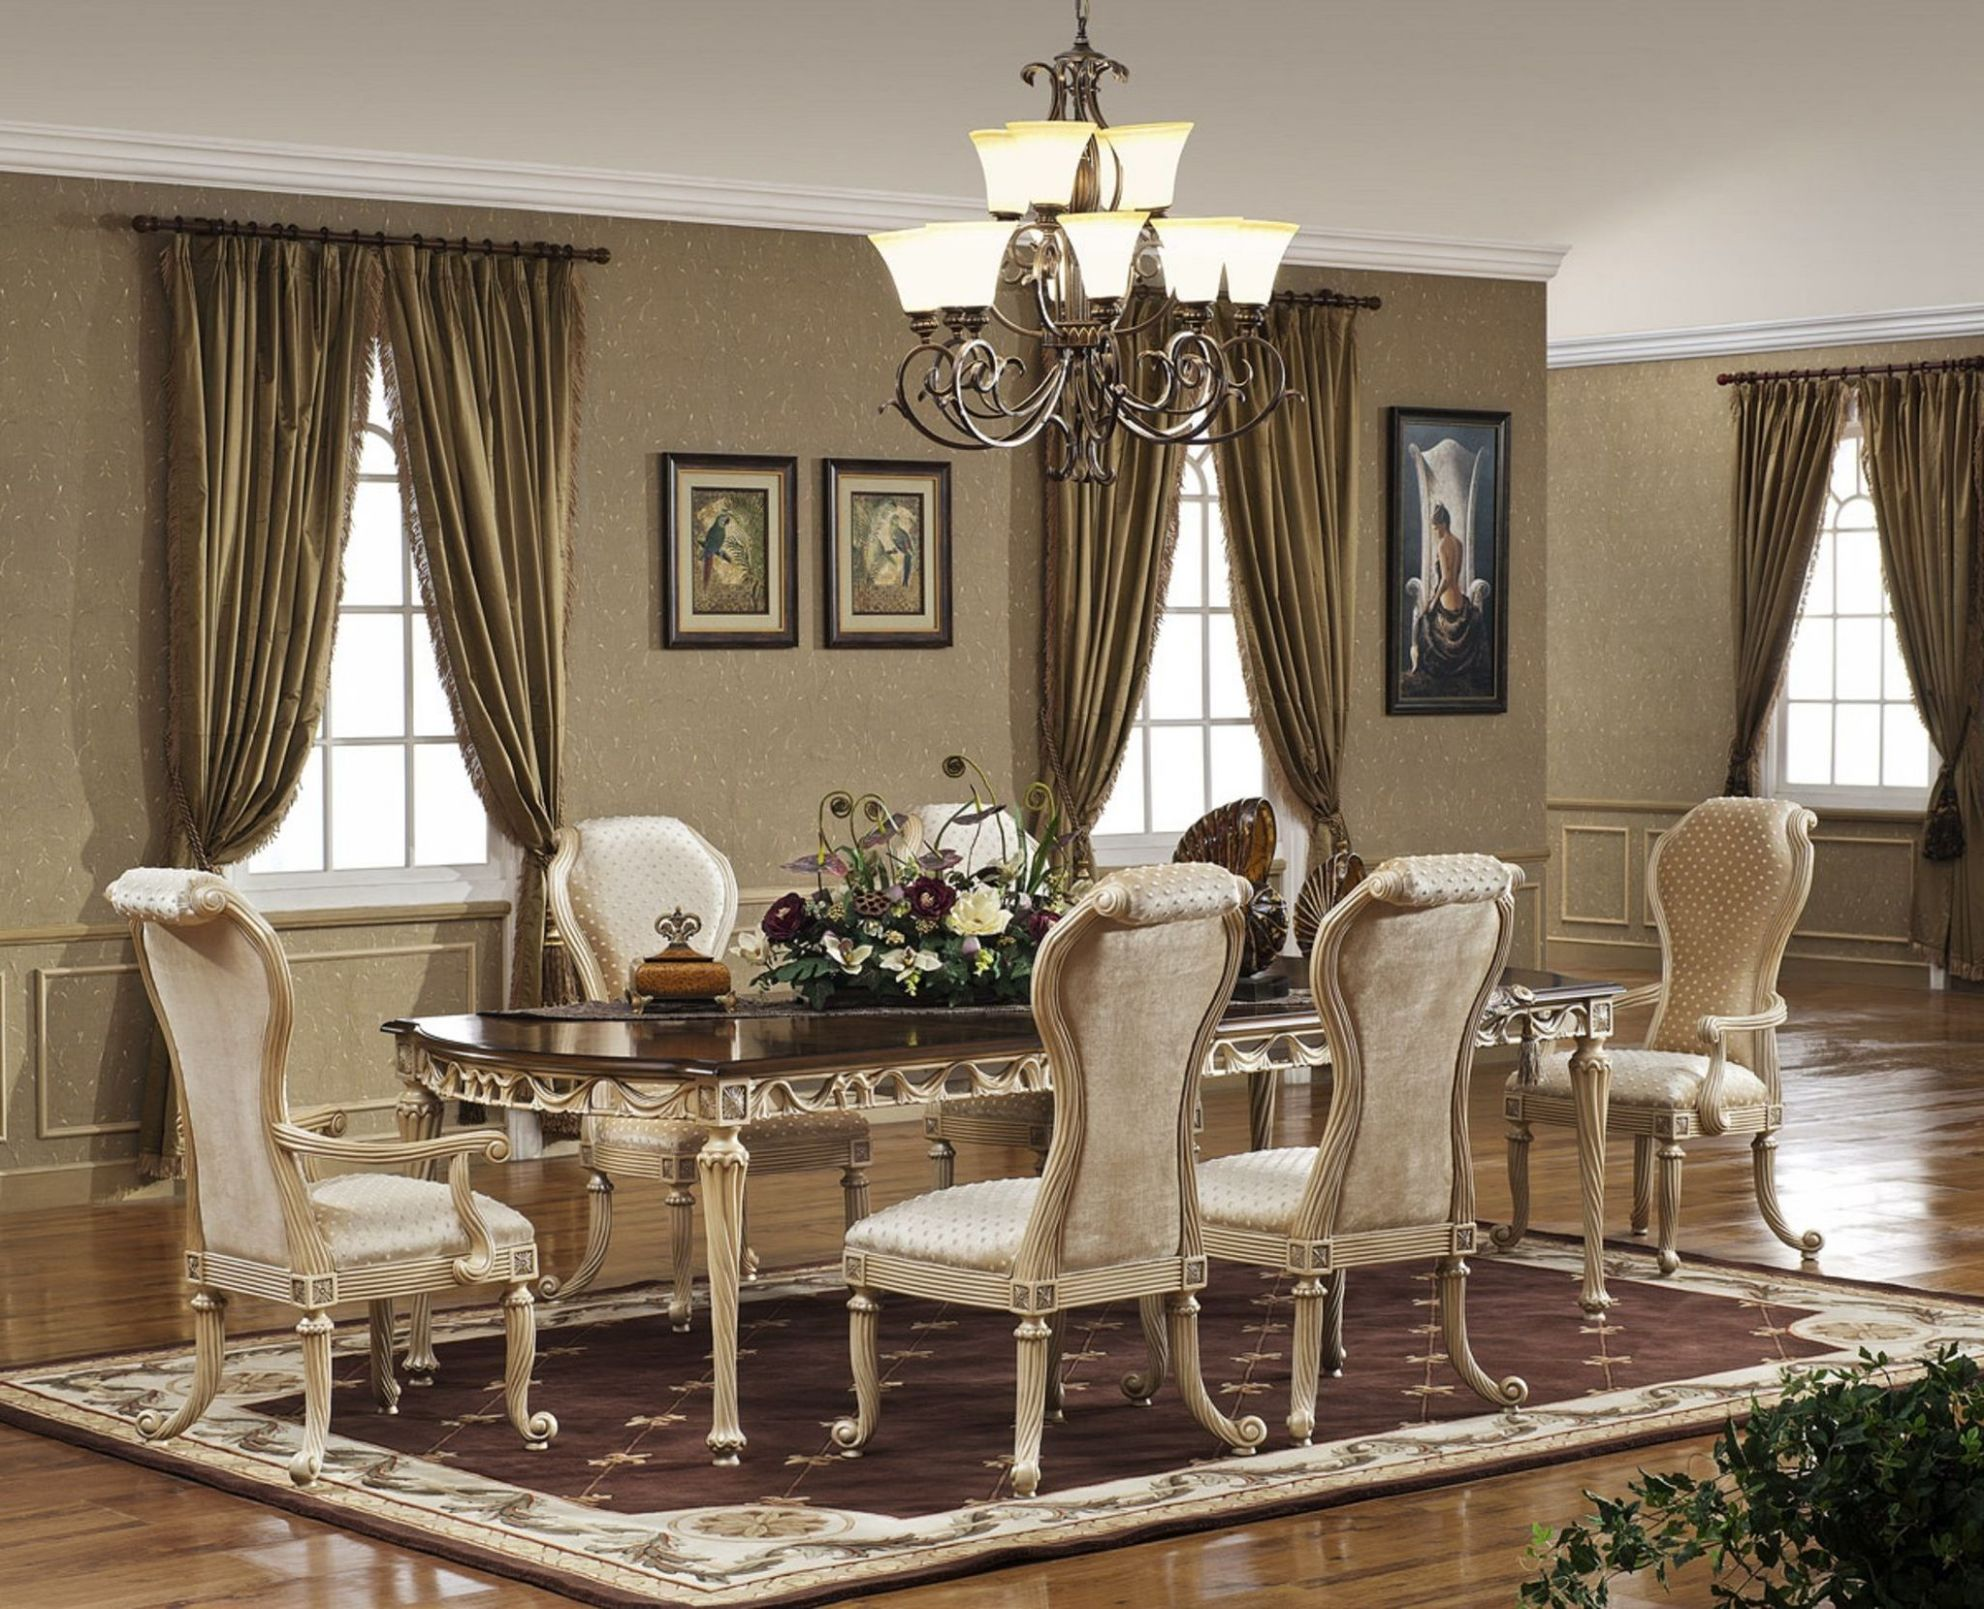 Dining Room Table and Chairs Ideas with Images - dining table ideas uk